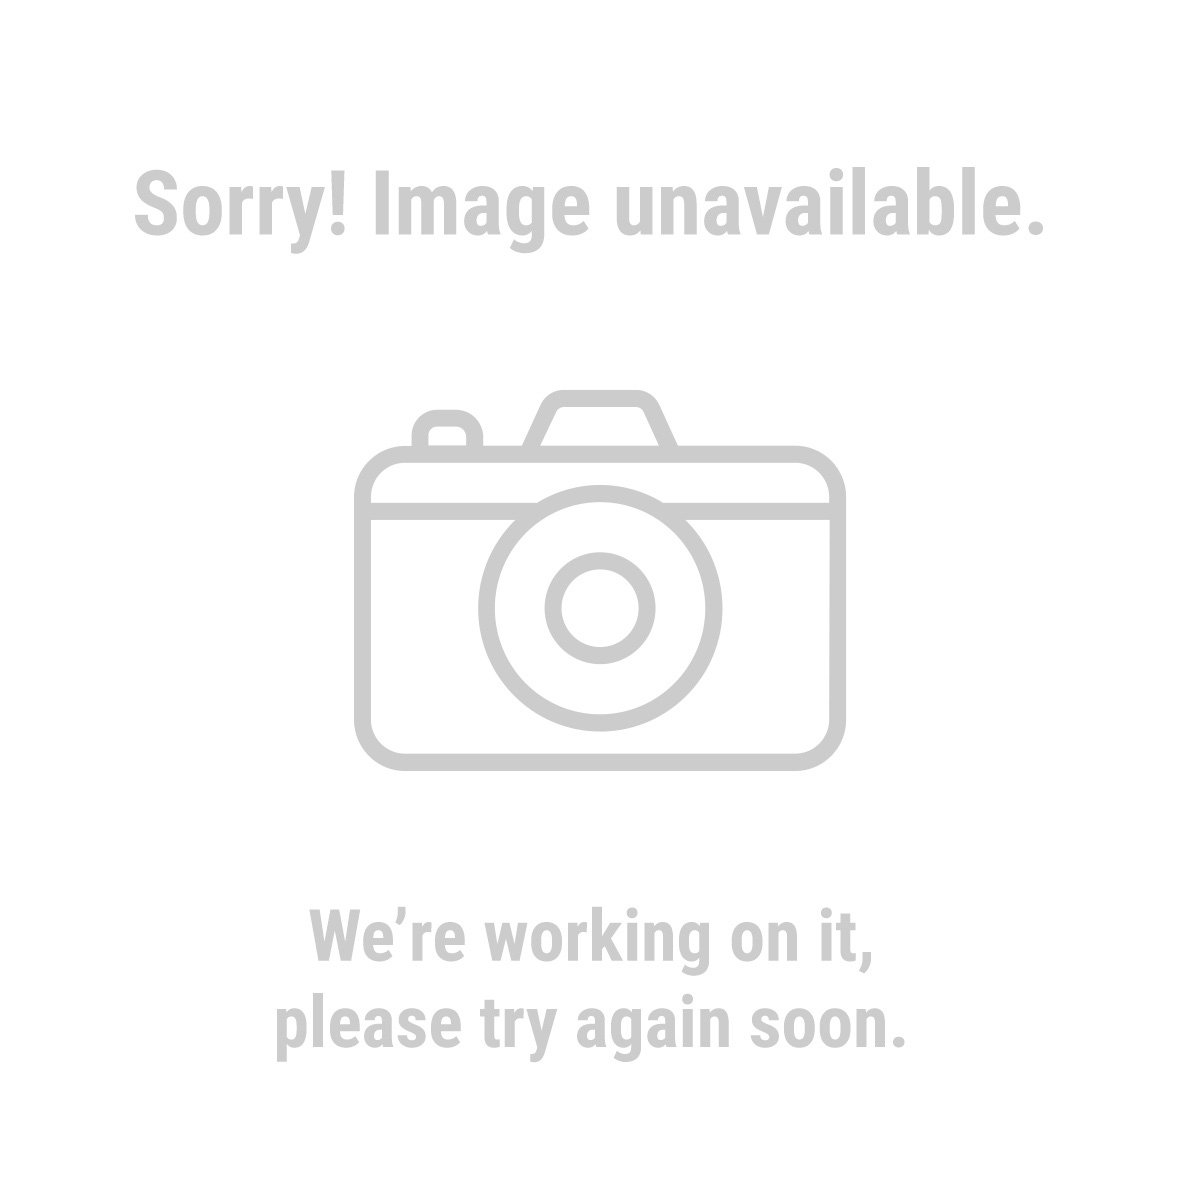 Haul-Master 63101 Submersible Trailer Light - Left Side